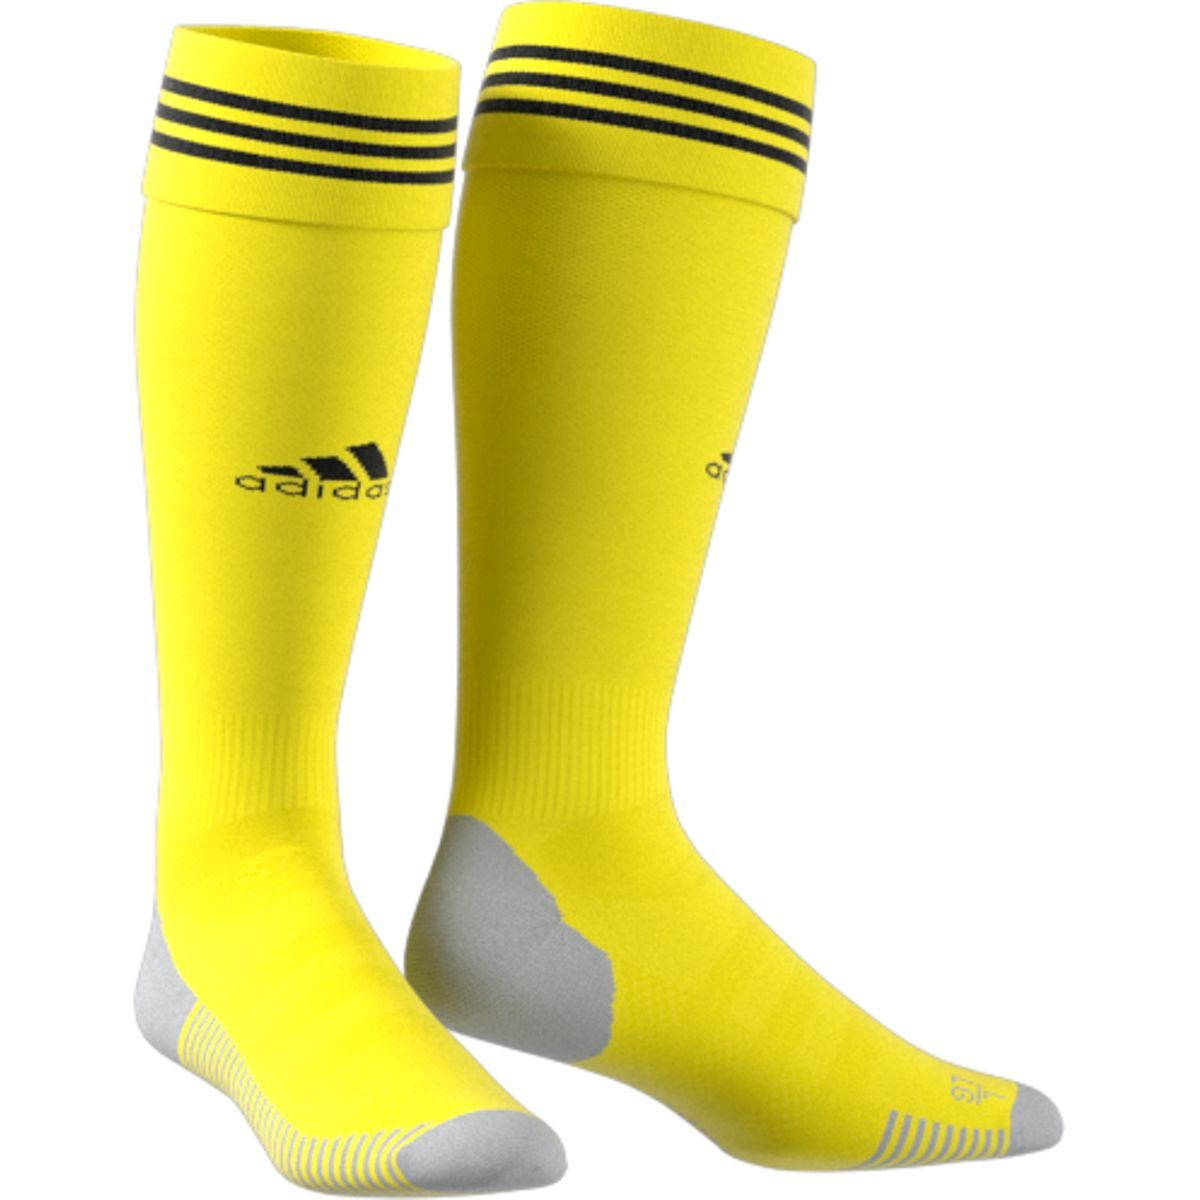 Chaussettes montantes ADISOCKS   Products   Chaussettes